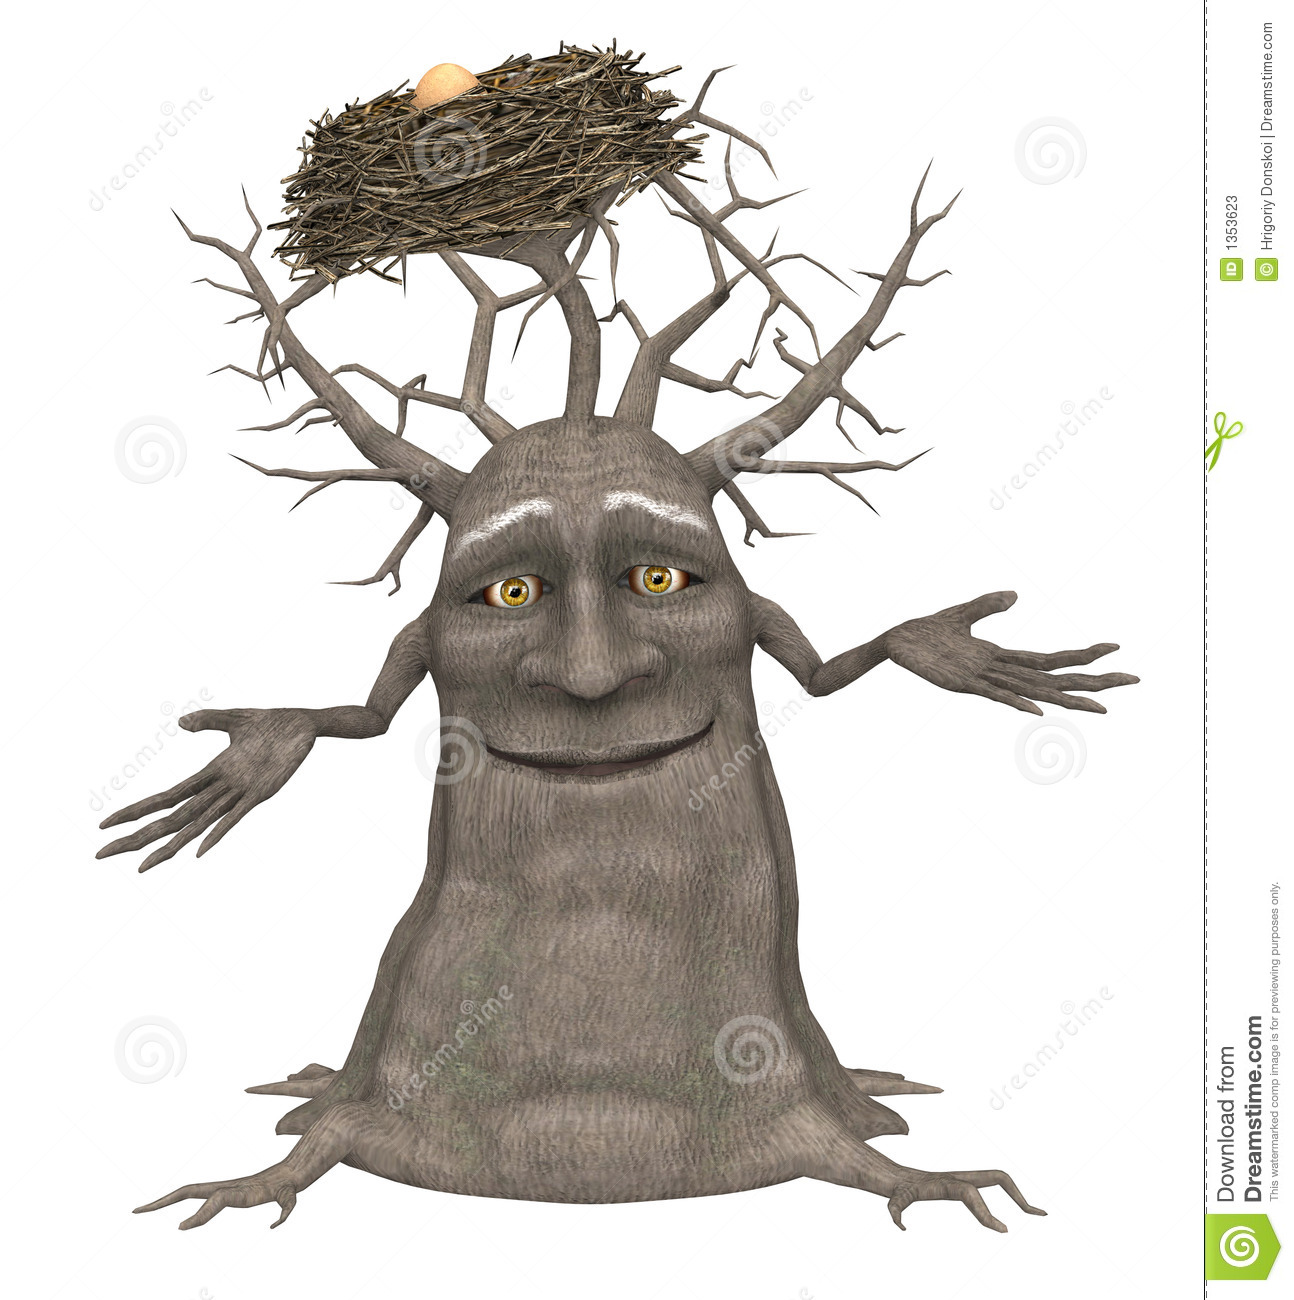 Treant clipart #20, Download drawings